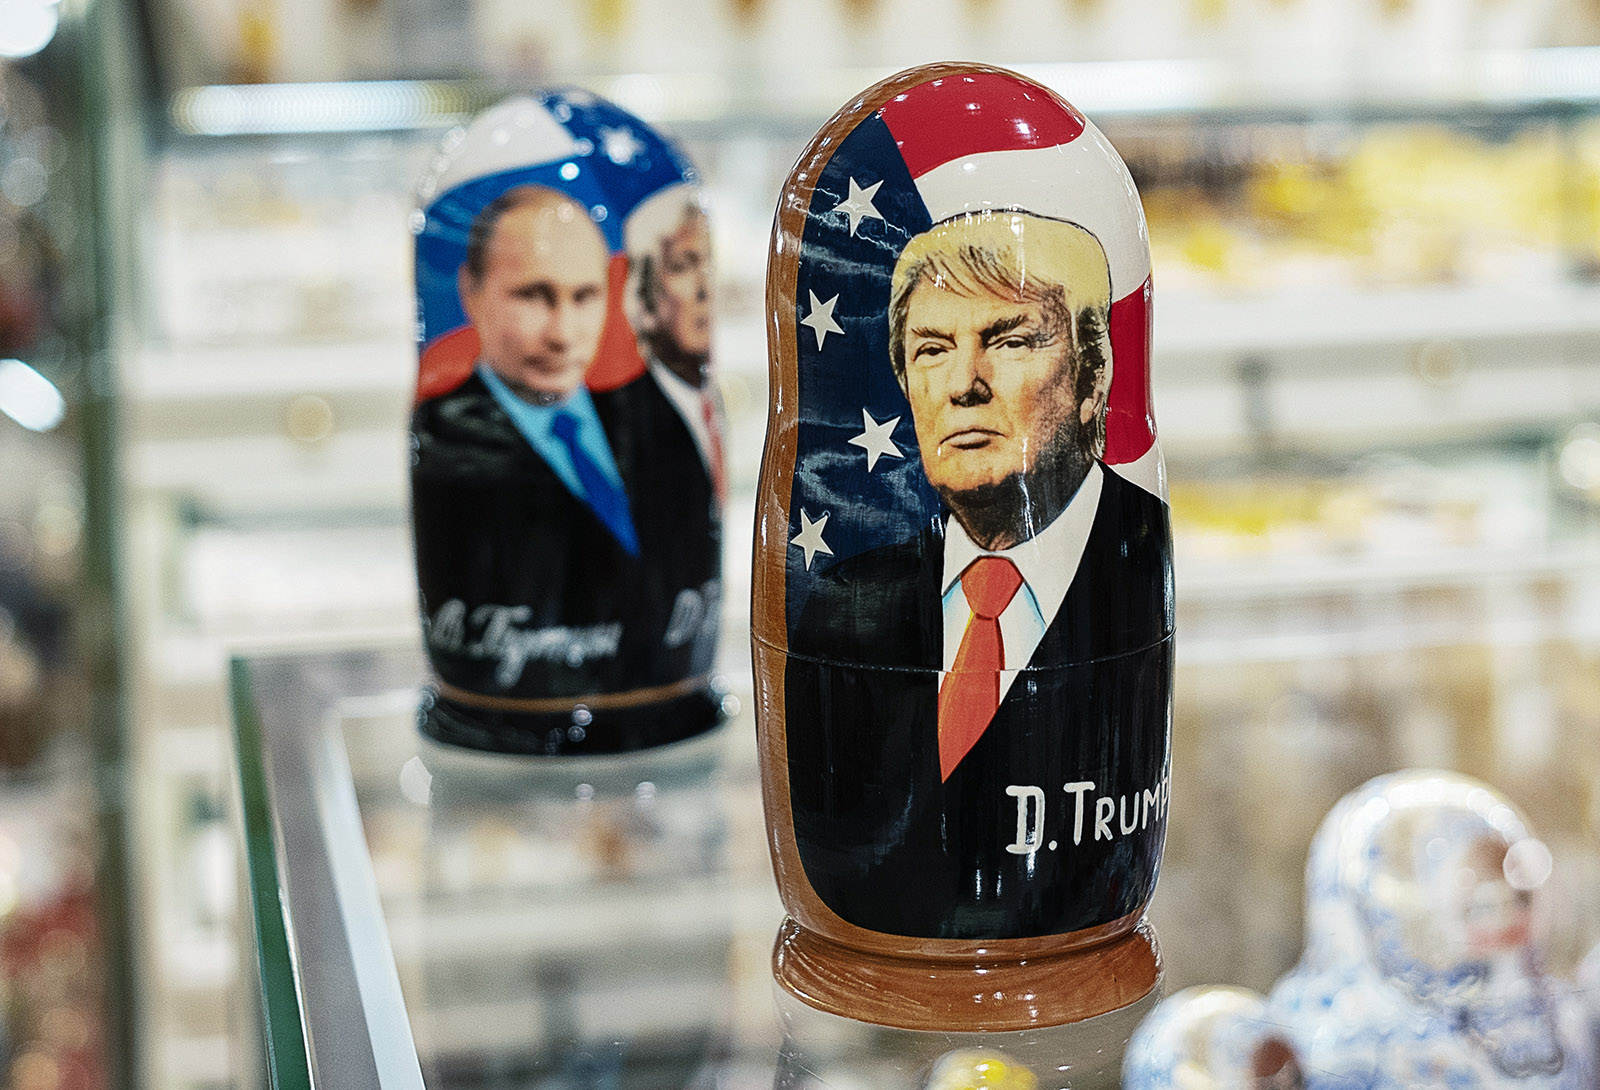 Matryoshka dolls featuring Russian President Vladimir Putin and US President Donald Trump